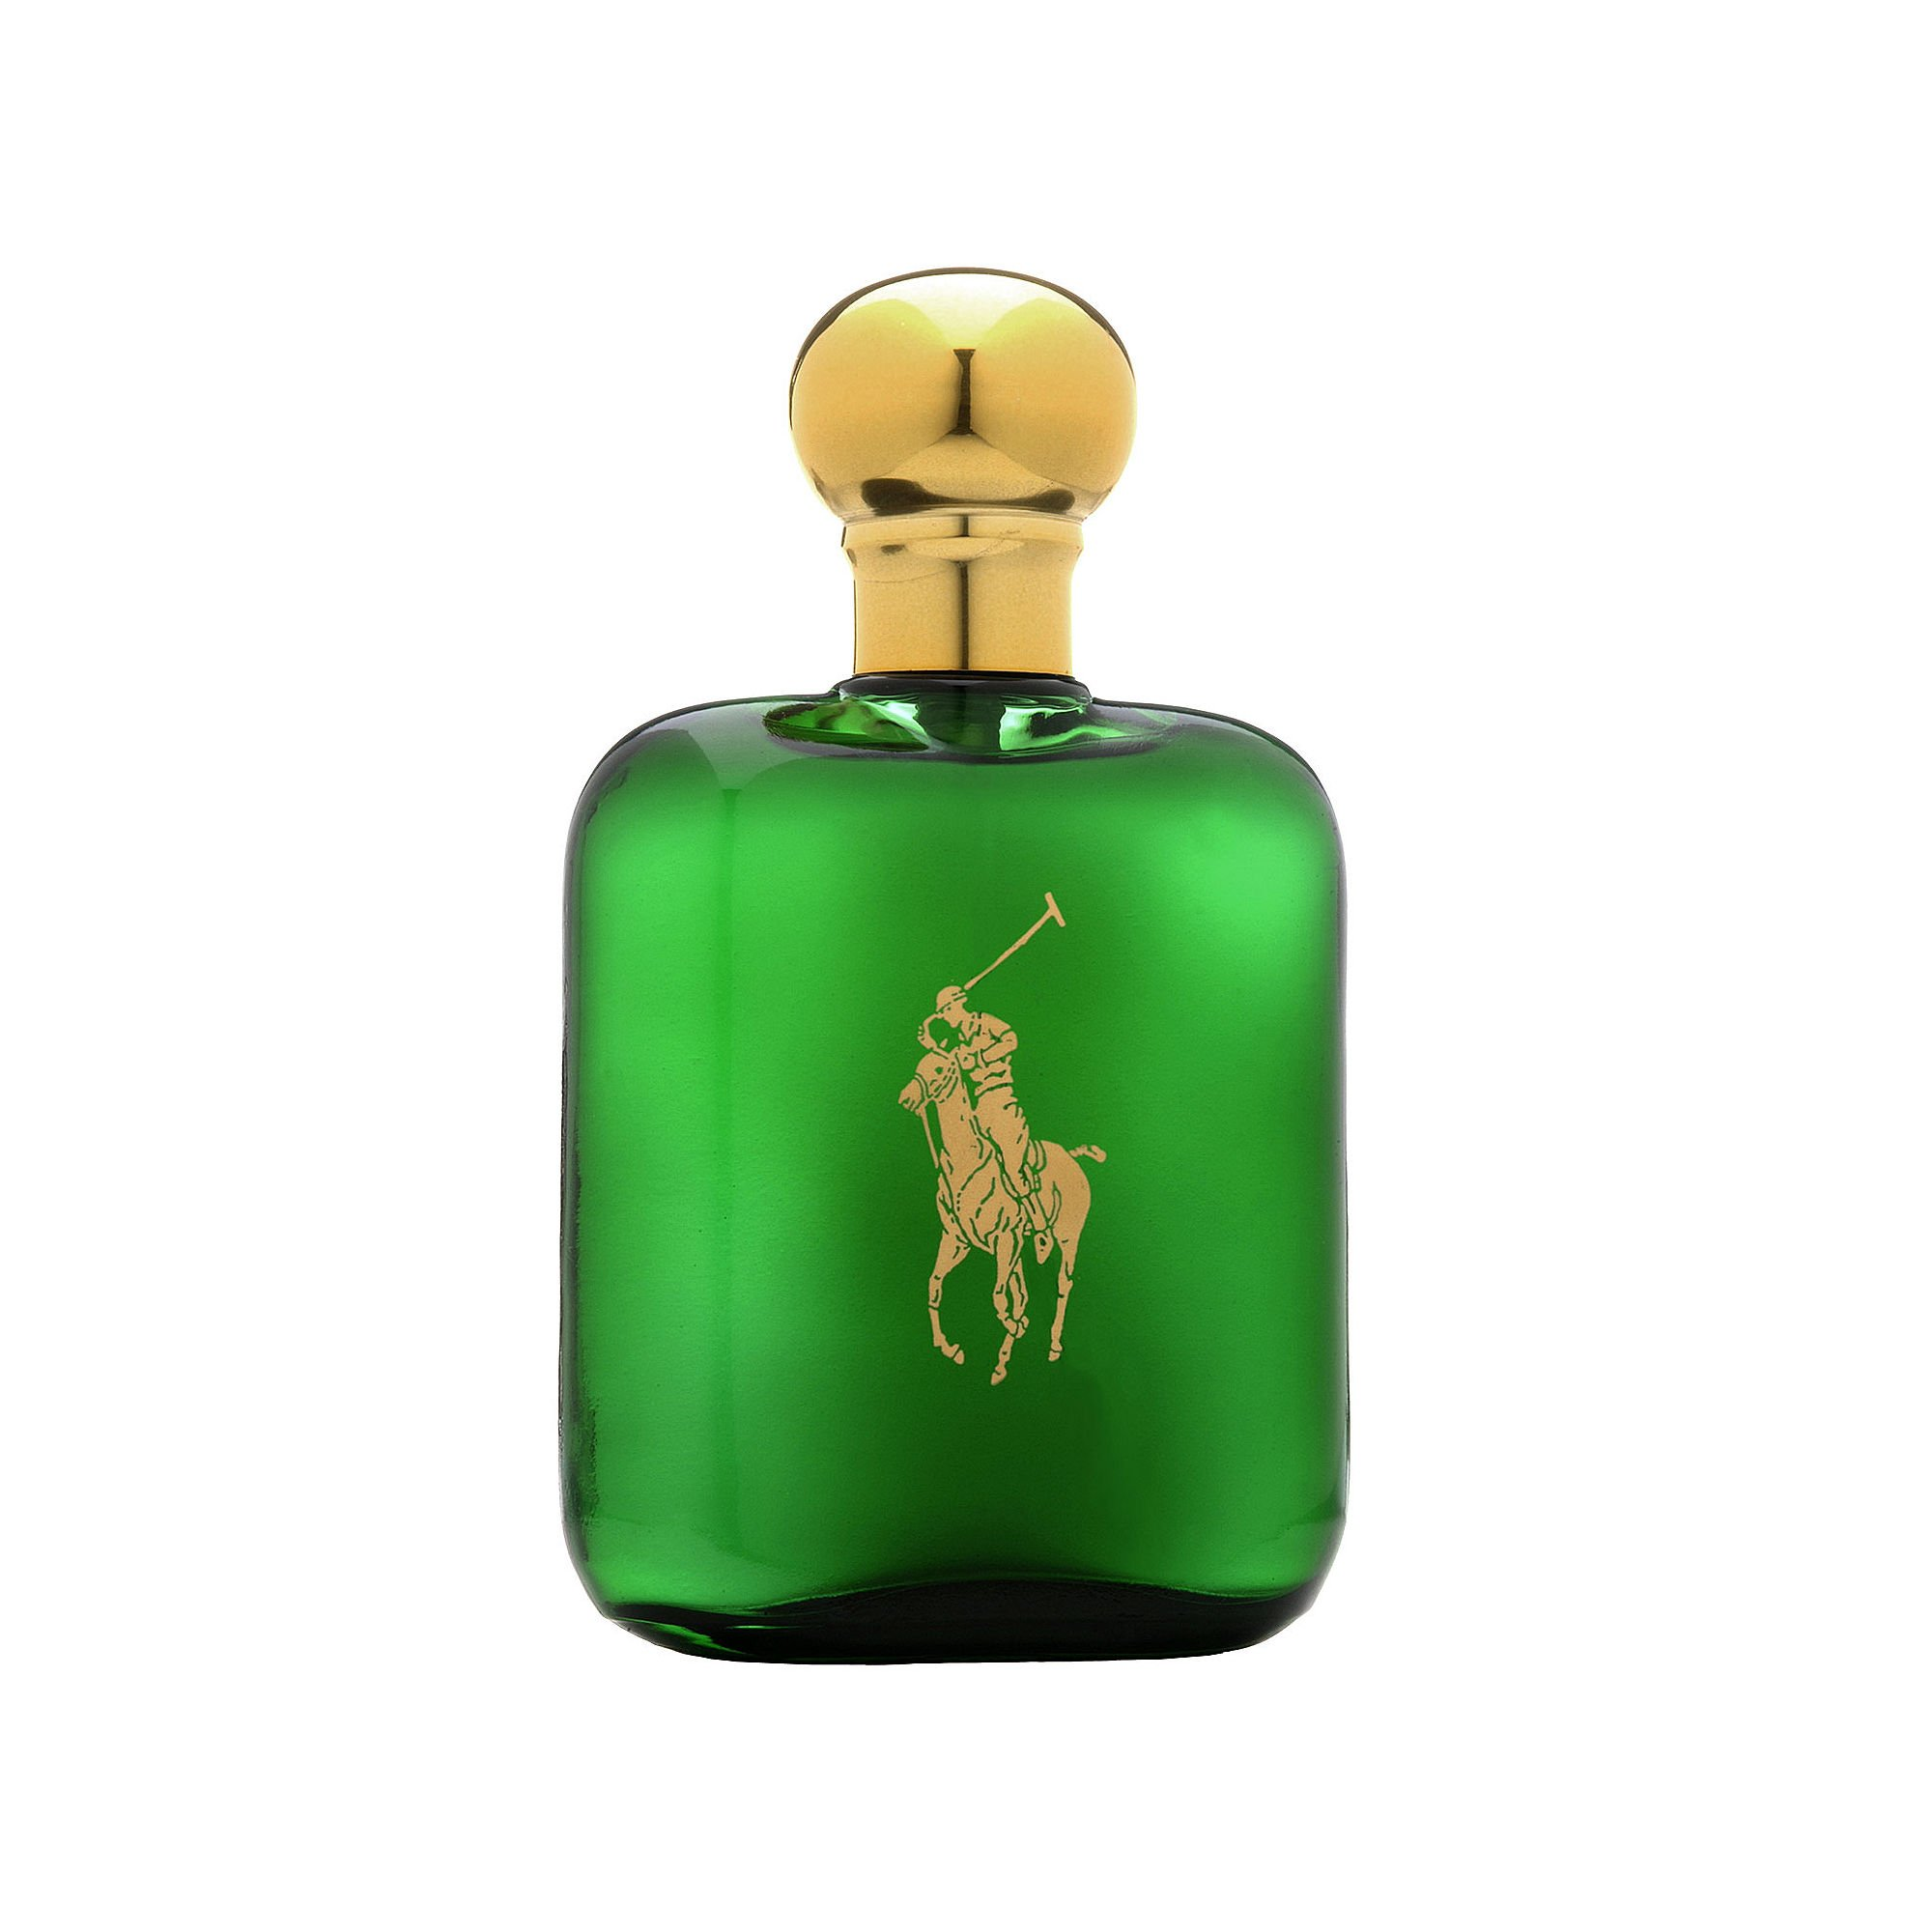 Polo Green by Ralph Lauren 4 oz 120 ml edt Cologne Spray For Men Original Retail Packaging